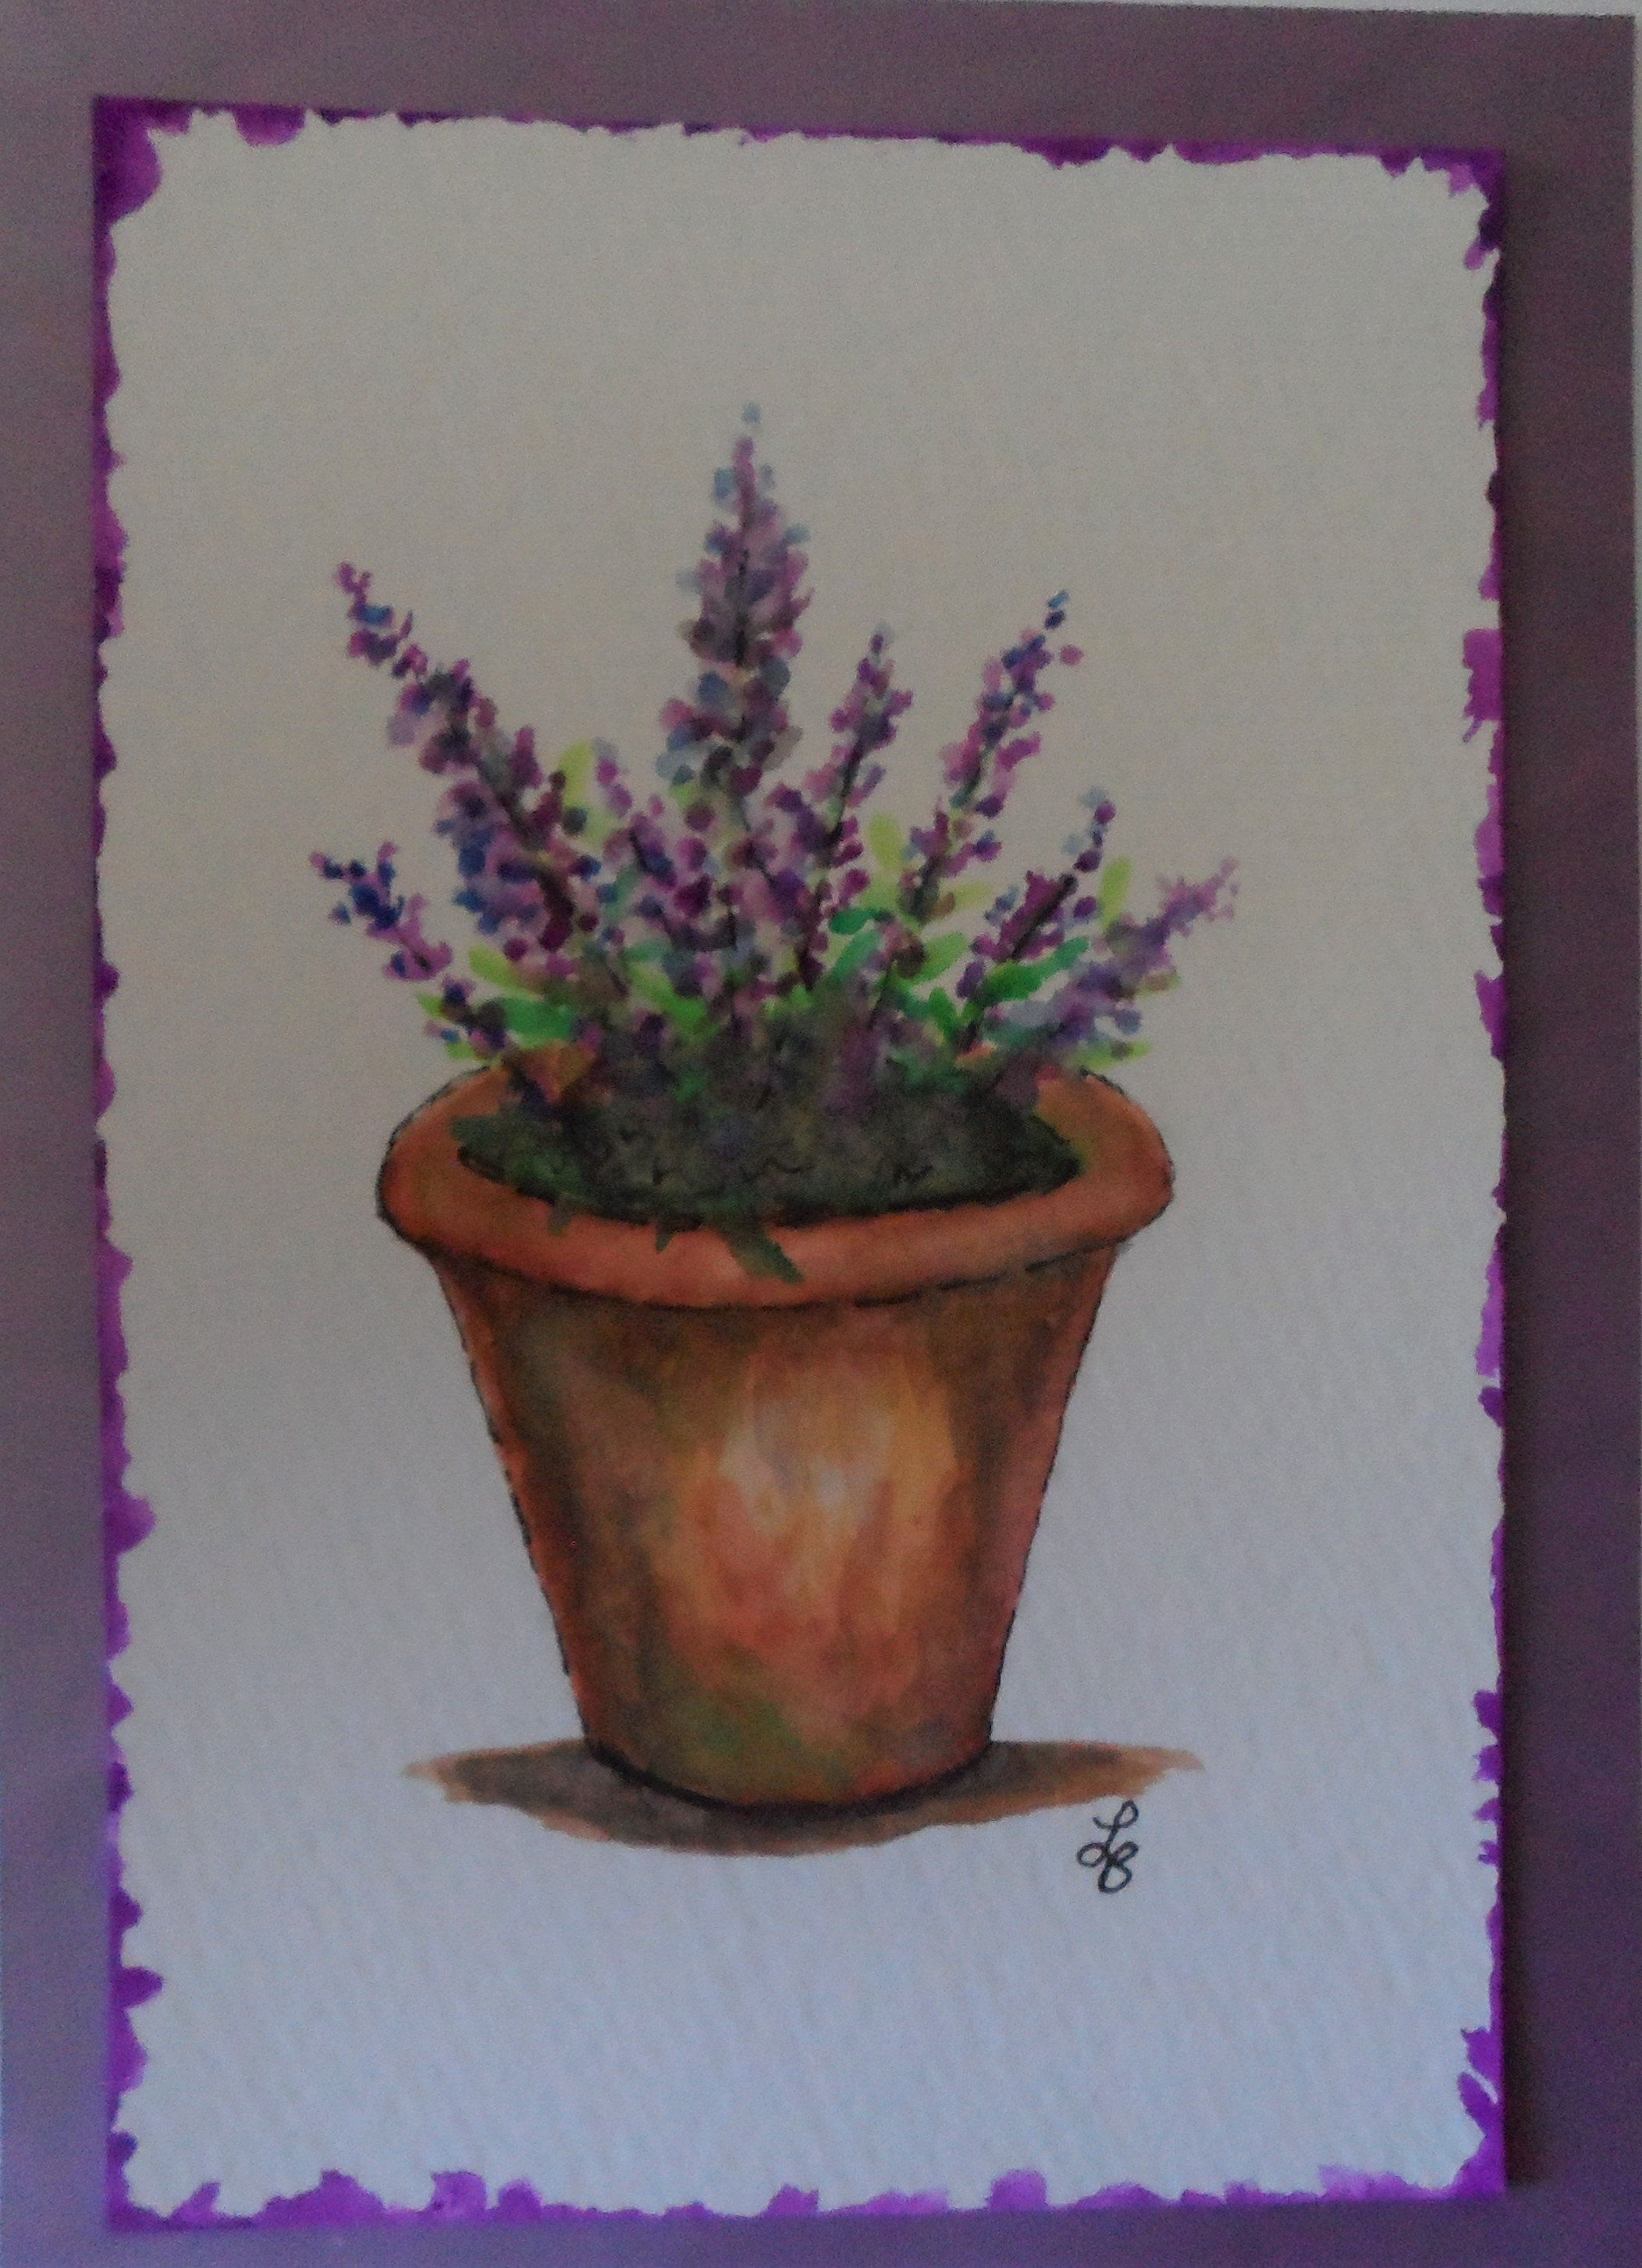 Watercolor Lavender Card Watercolors And Ink Lavender In Flower Pot Greeting Card In 2020 Peony Painting Violet Wall Art Hydrangeas Art